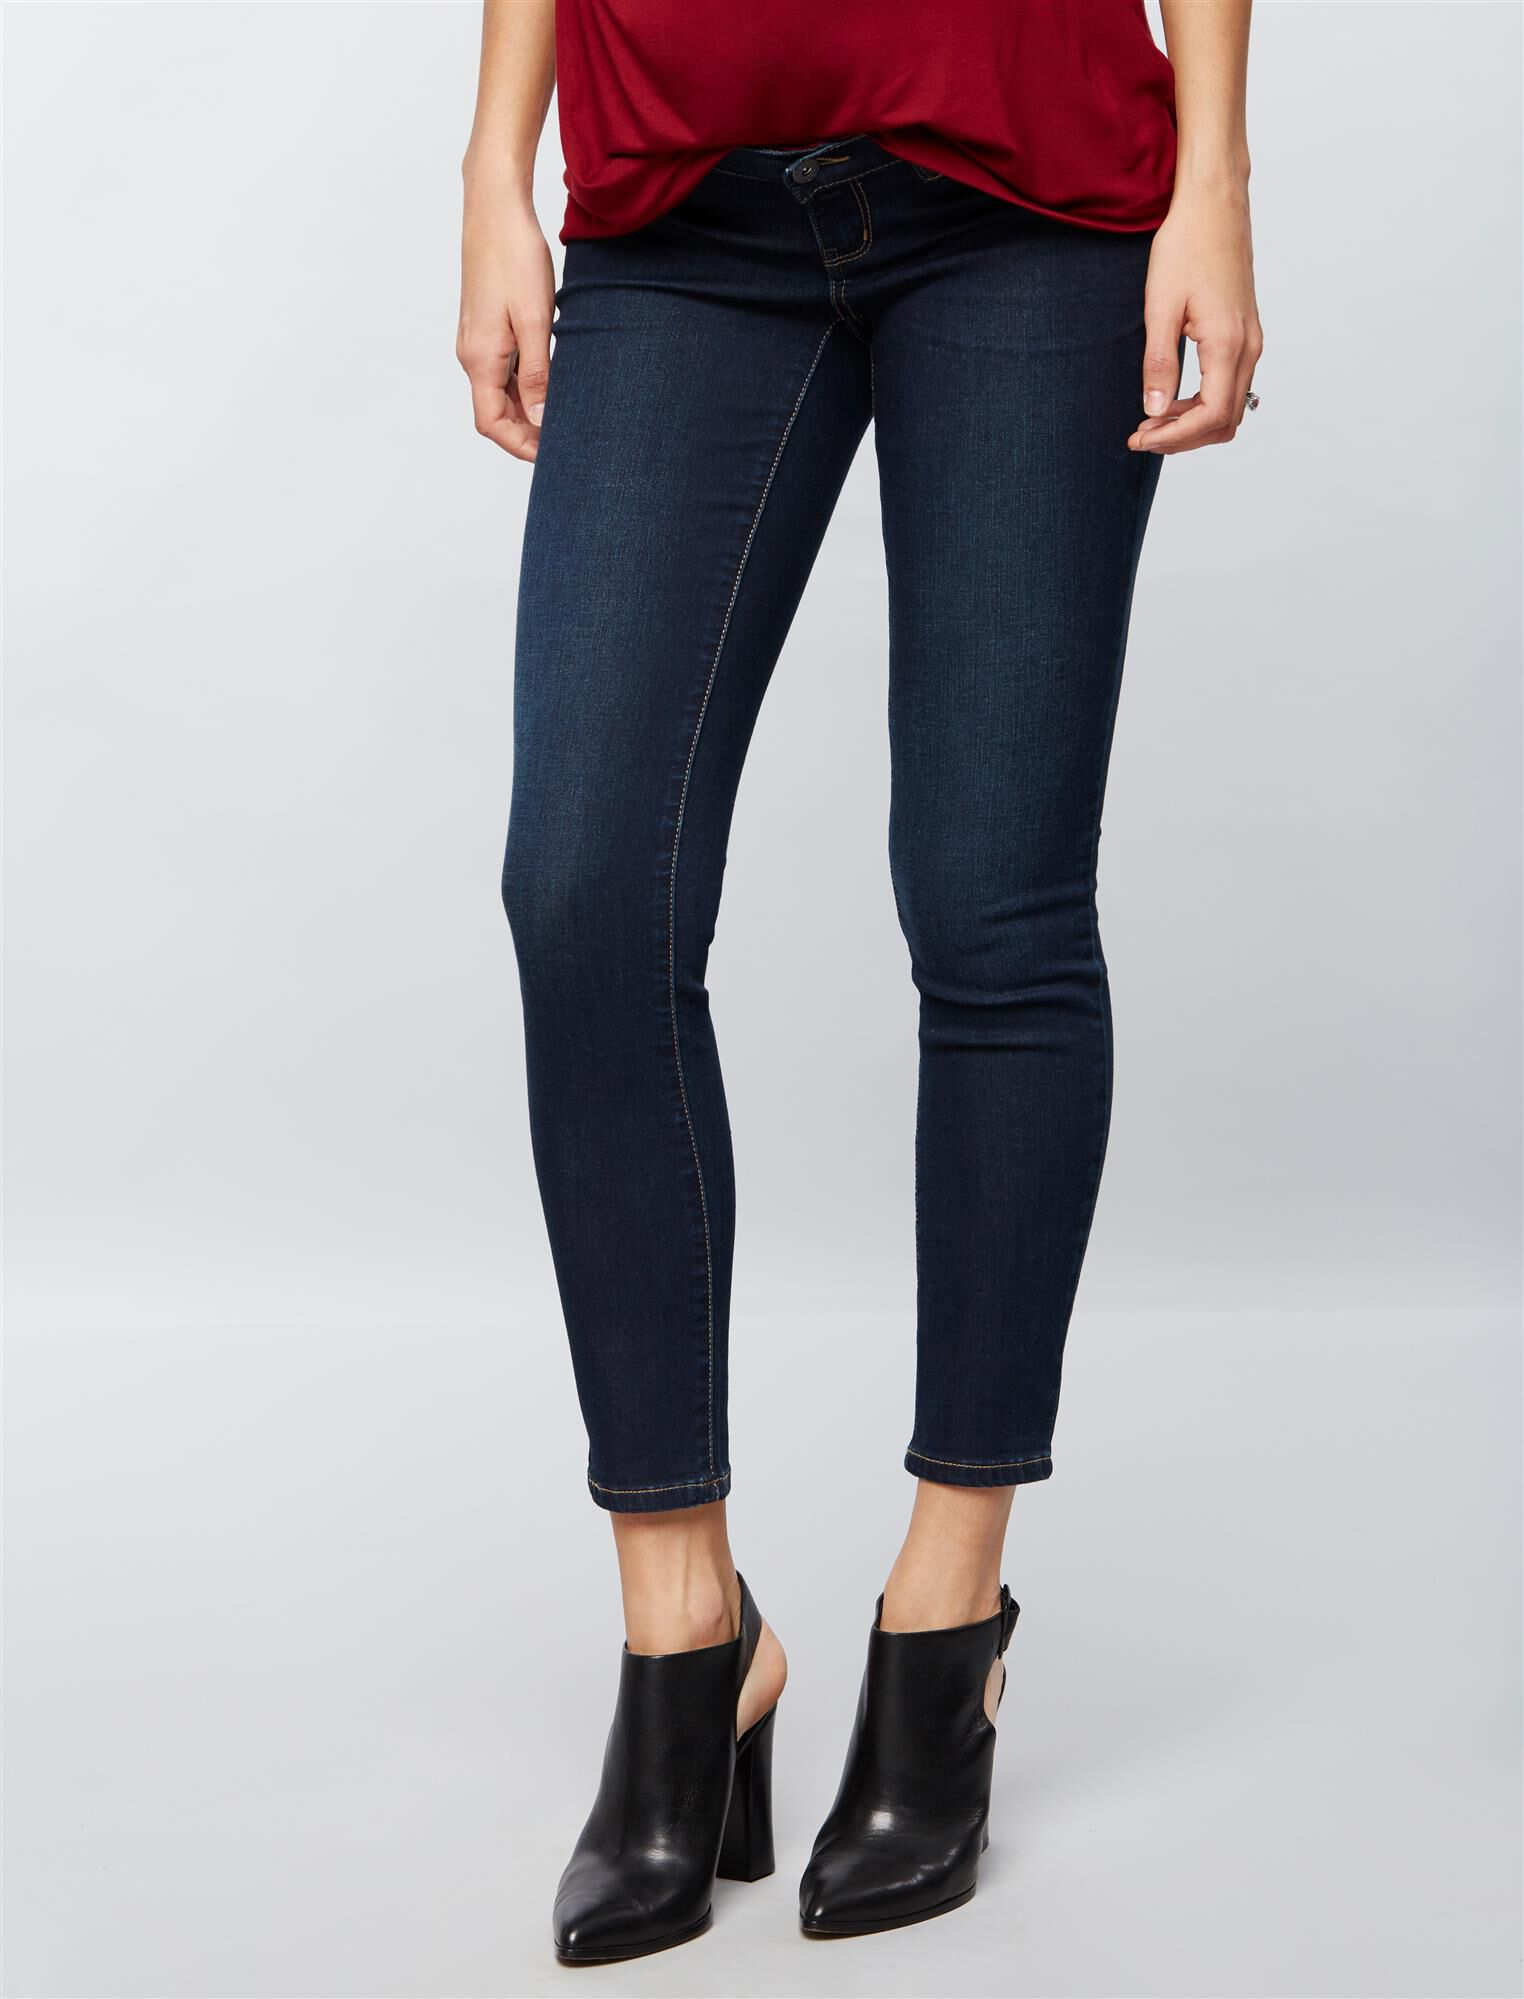 Luxe Essentials Denim Side Panel Ankle Maternity Jeggings